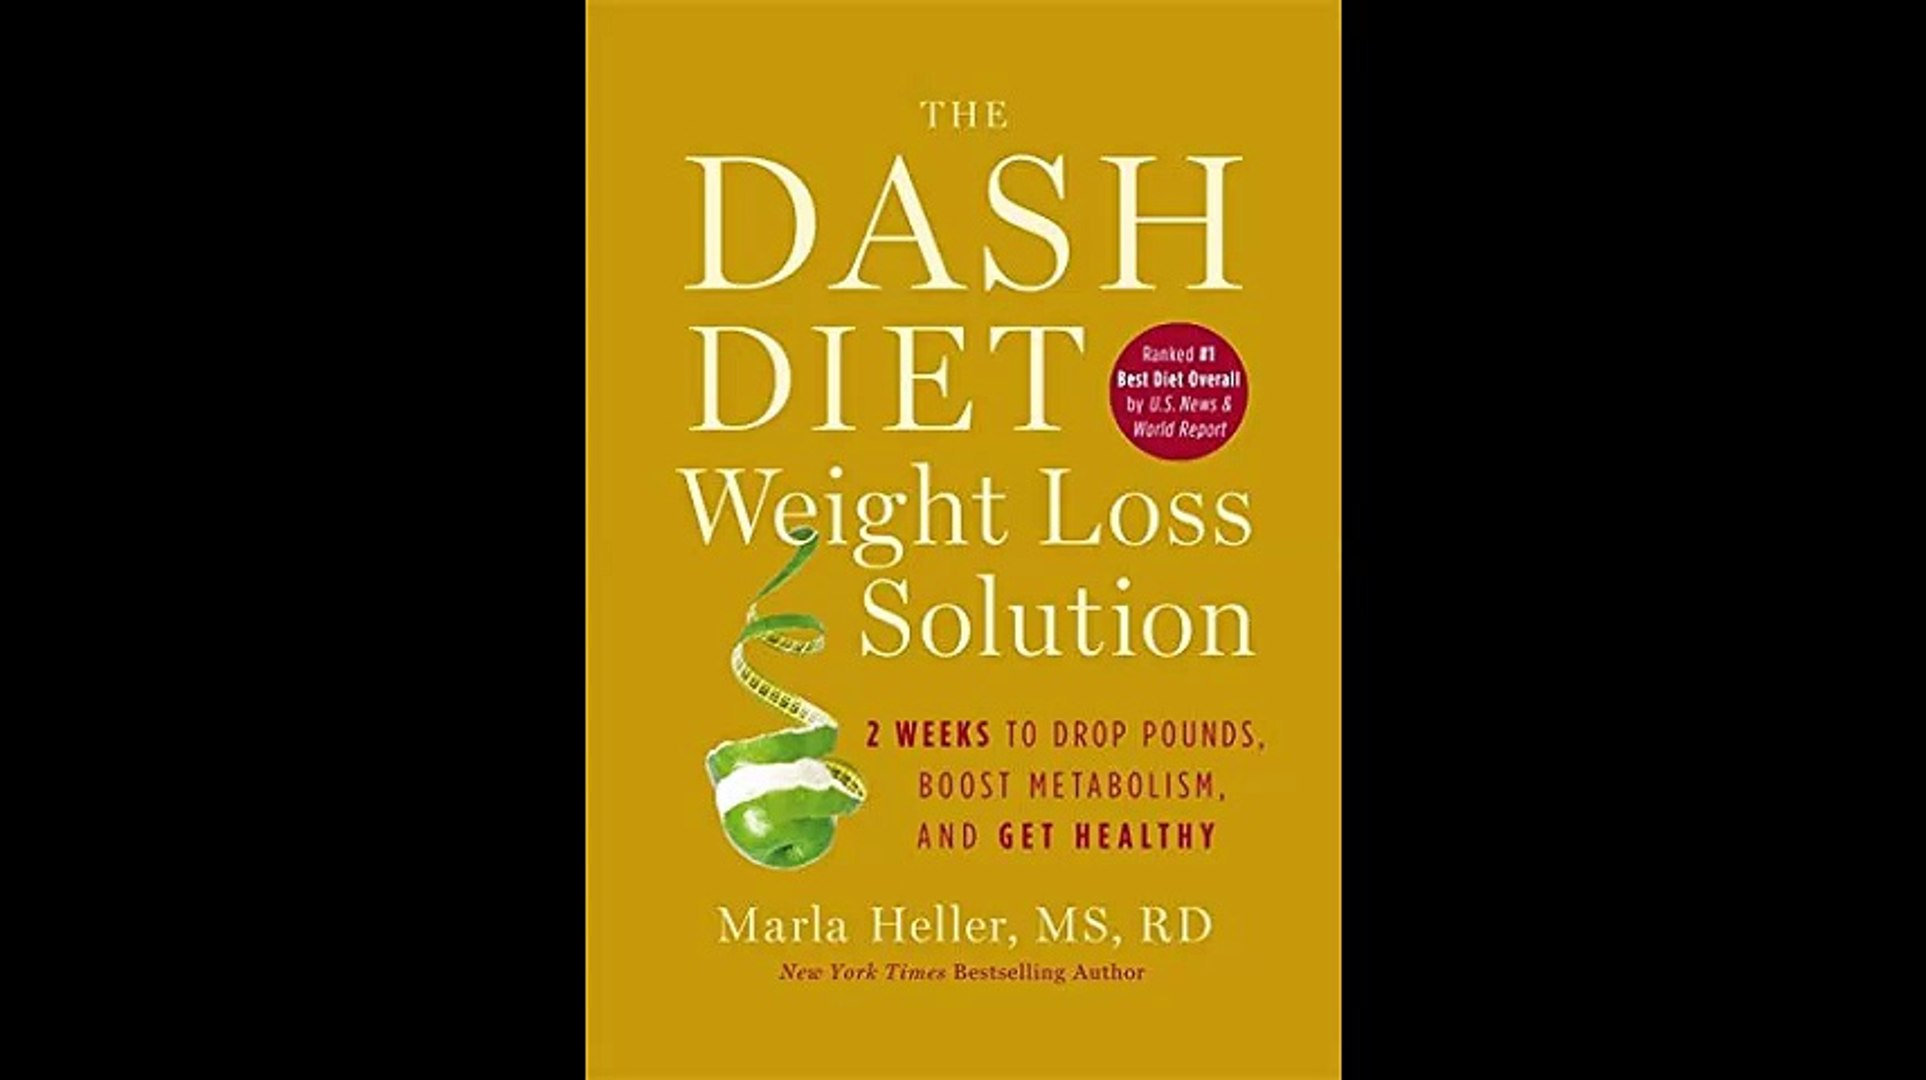 The Dash Diet Weight Loss Solution 2 Weeks to Drop Pounds Boost Metabolism and Get Healthy A DASH Di